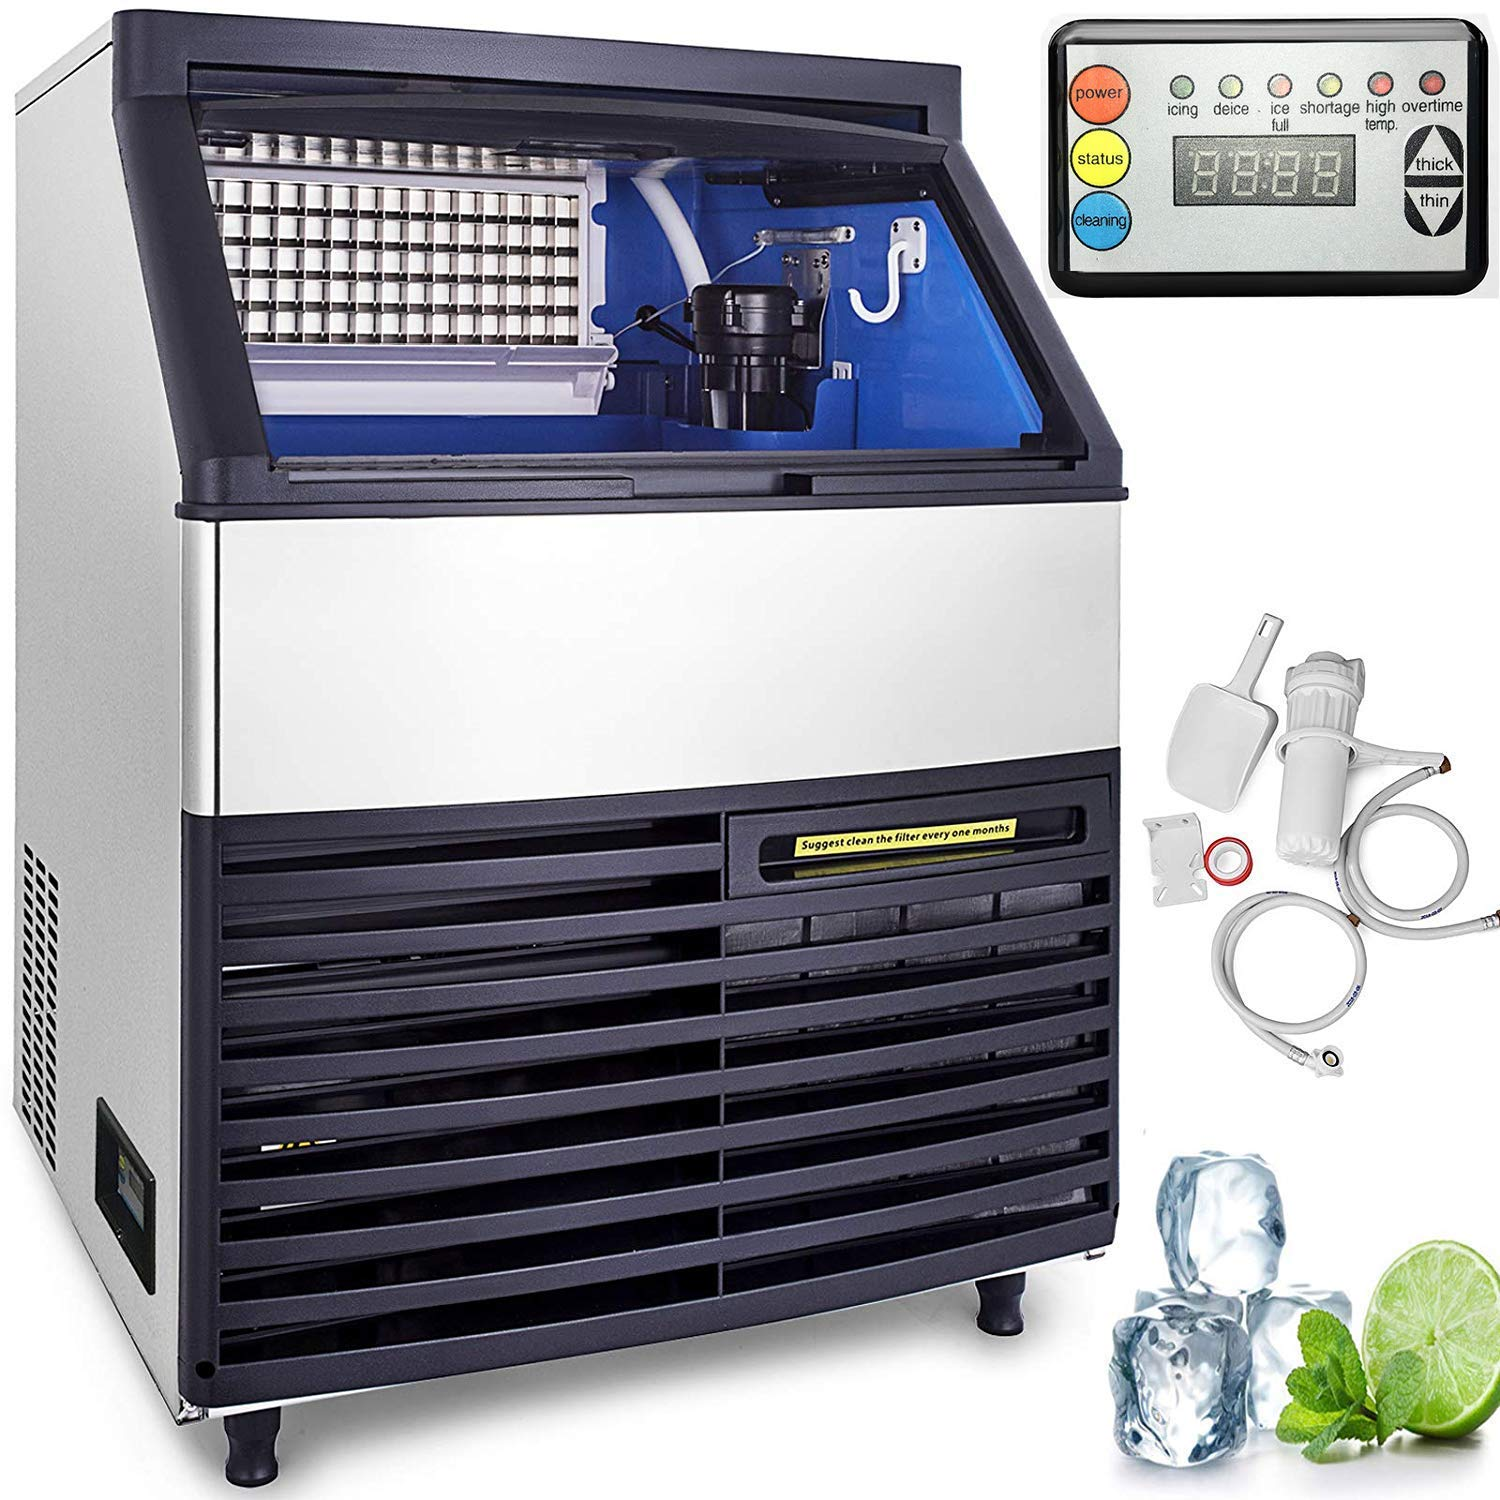 VEVOR 110V Commercial Ice Maker 264LBS/24H with 99LBS Storage Capacity Commercial Ice Machine 90 Ice Cubes Per Plate Include Scoop and Connection Hoses Auto Clean for Bar Home Supermarkets Restaurant